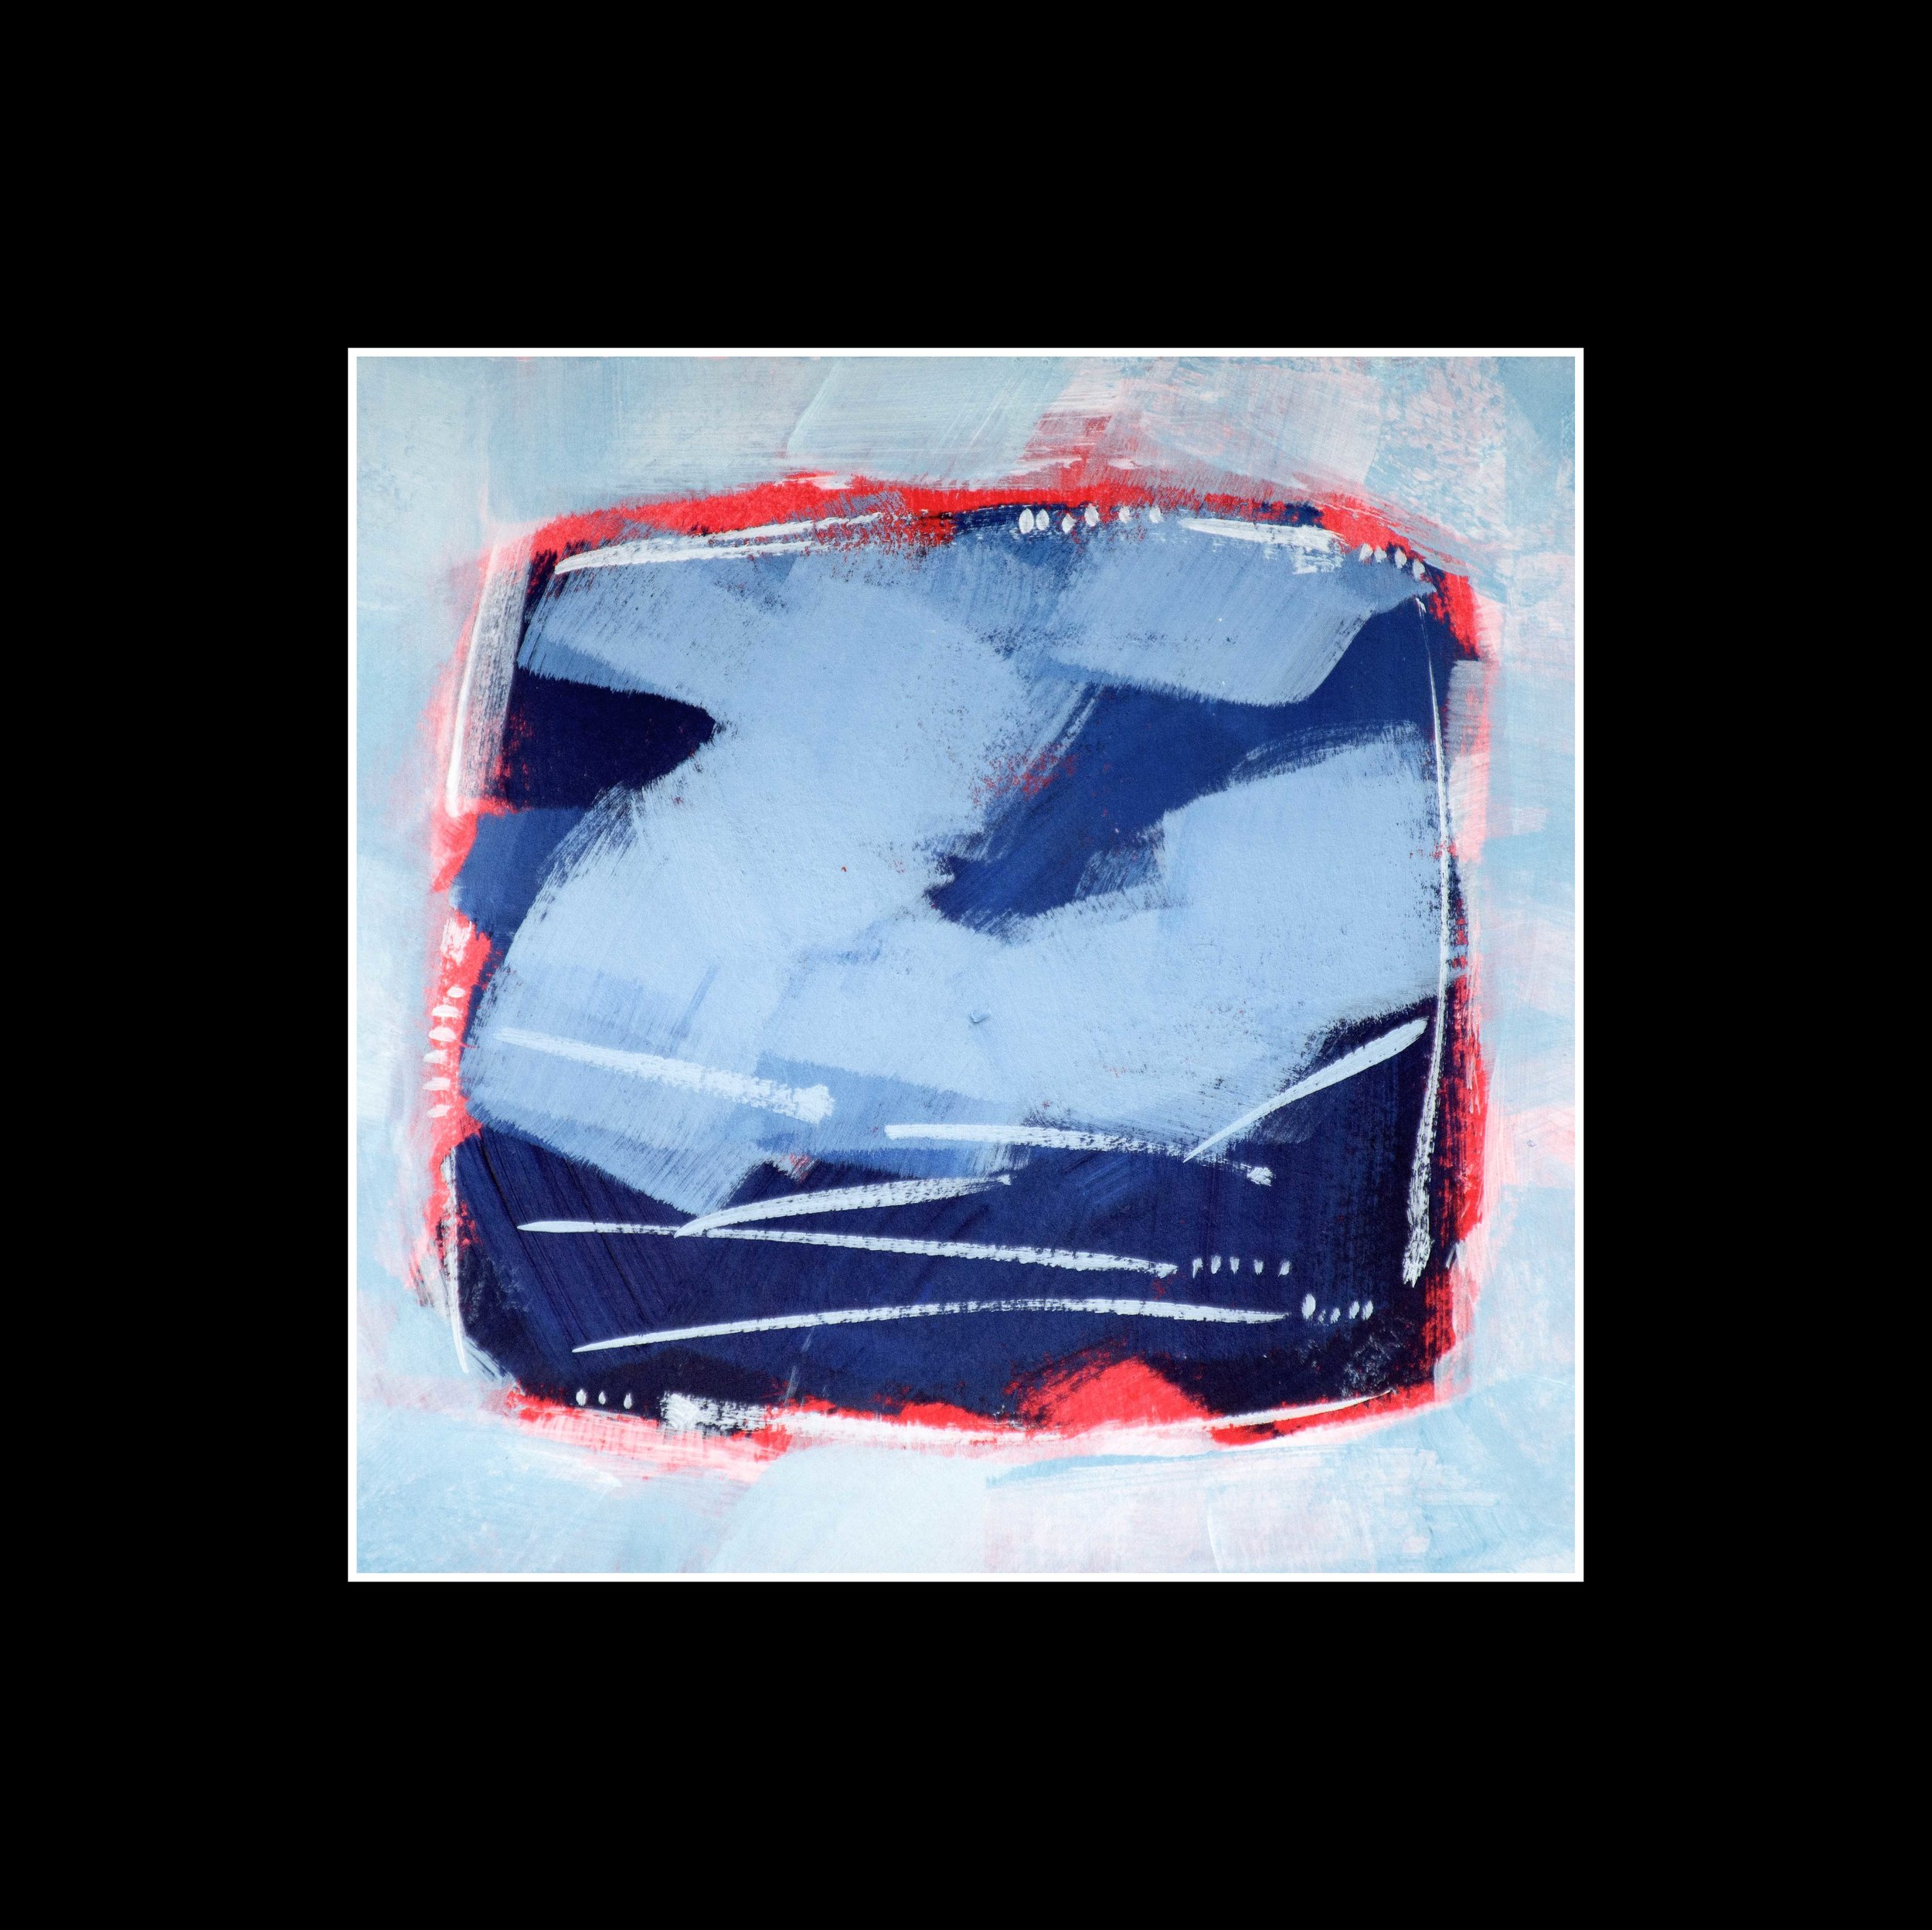 RWS005_Landscape in blue #5_SF_BlackMatte.jpg